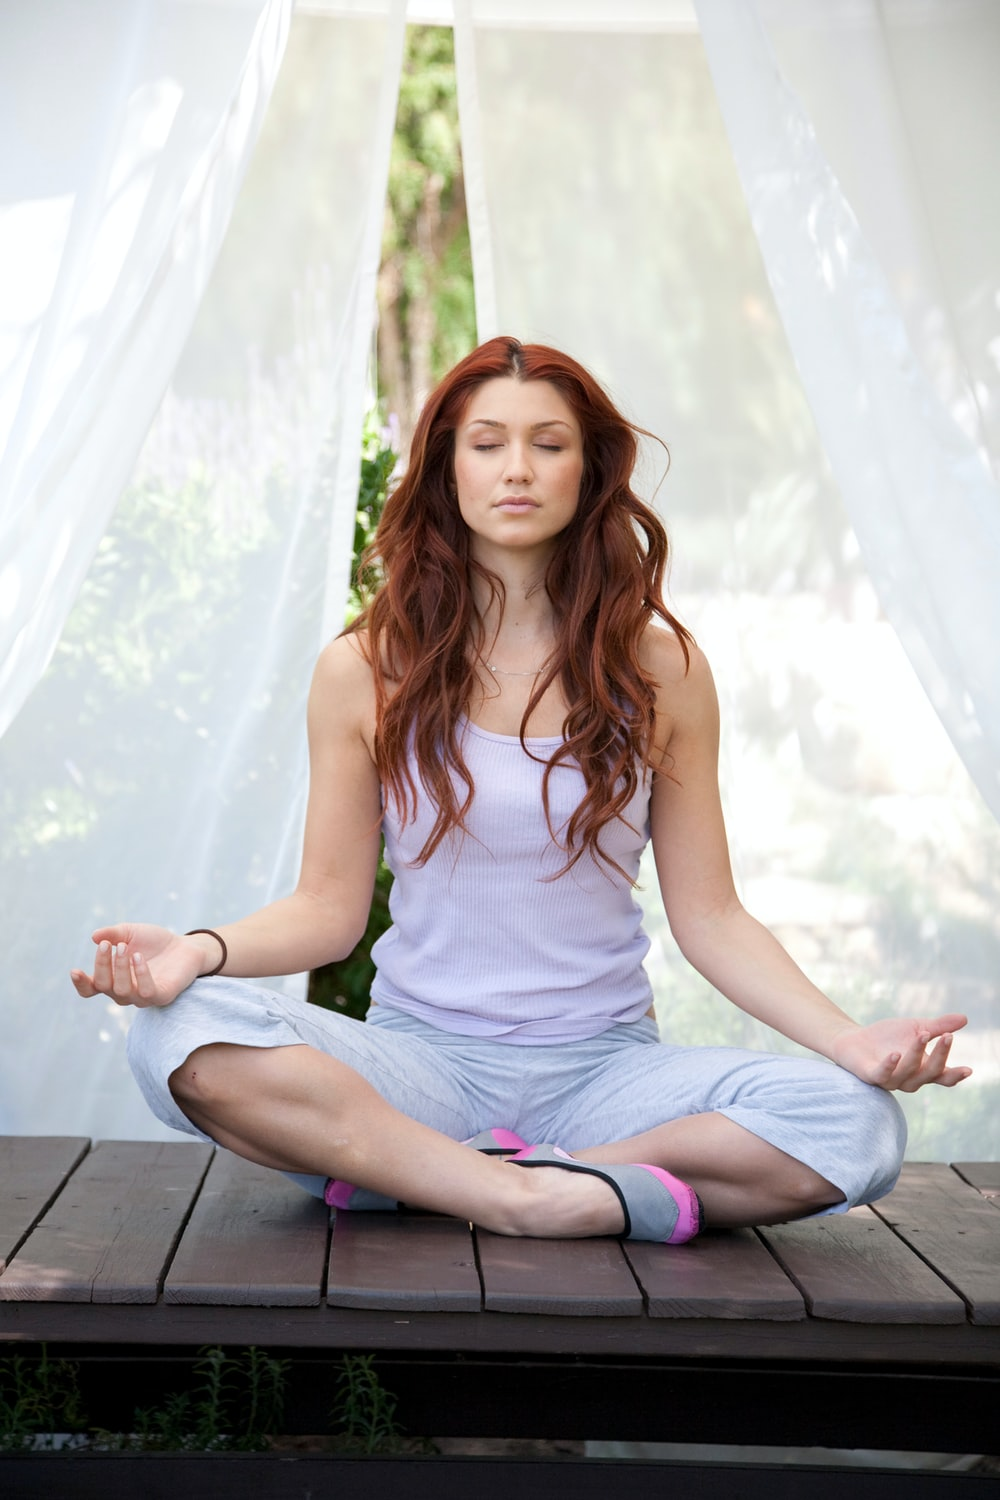 woman doing yoga pose sitting on wooden ground